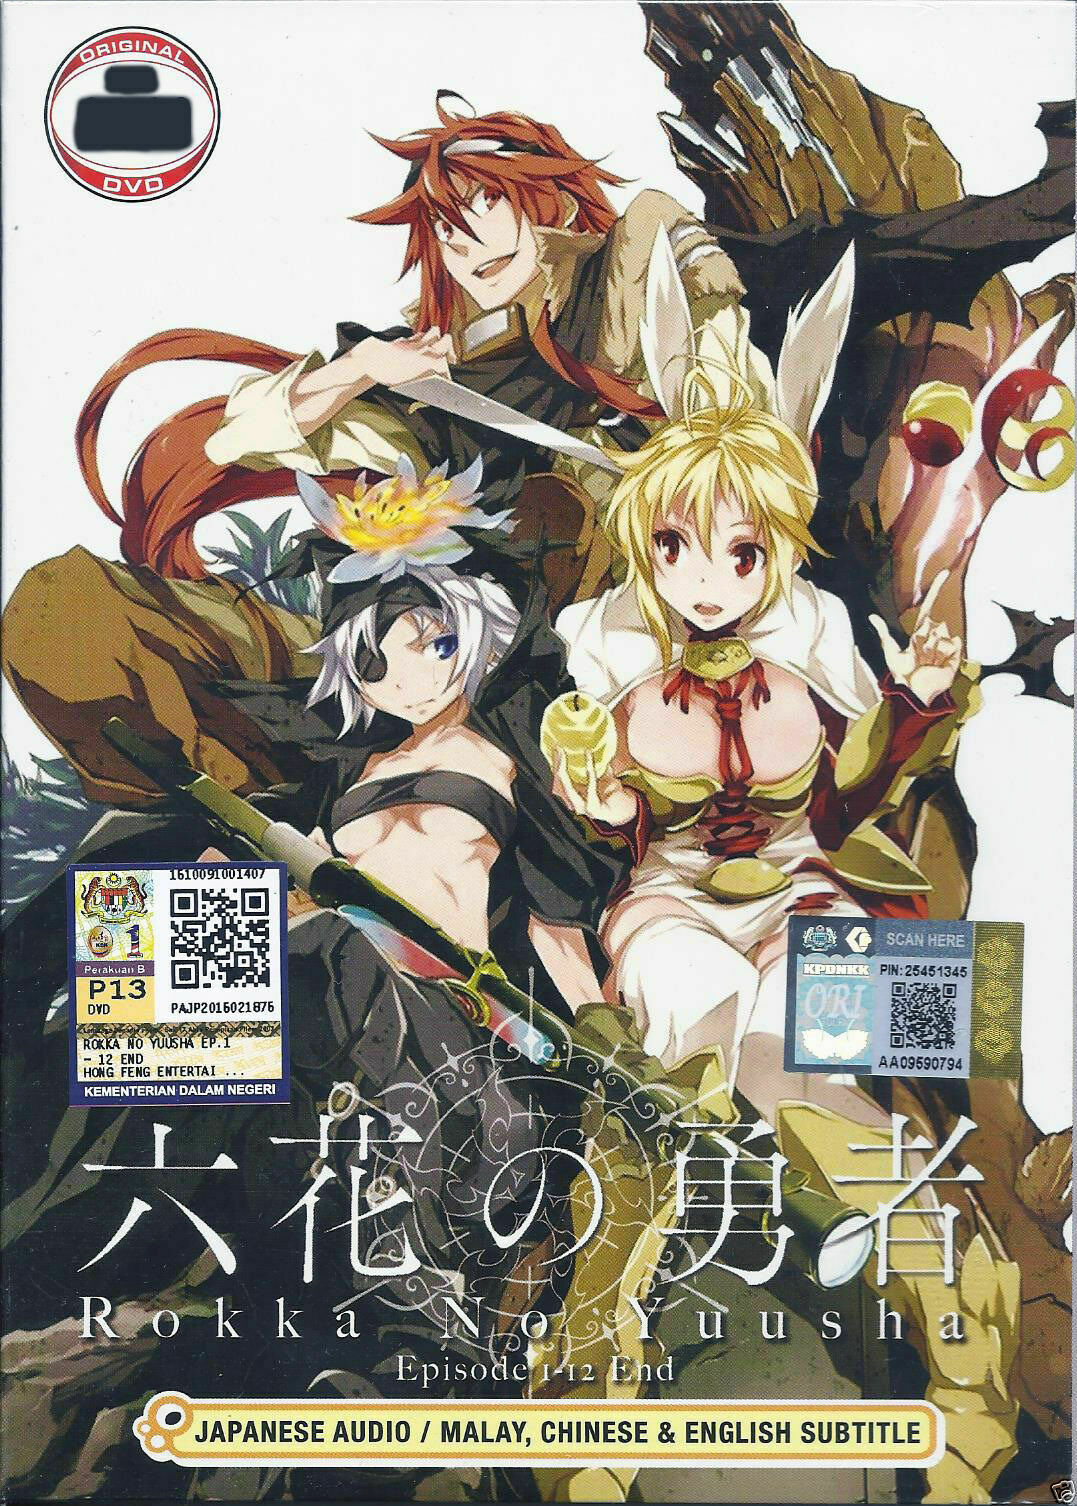 Rokka No Yuusha: Braves Of The Six Flowers Anime Vol. 1 - 12 End DVD Box Set ~